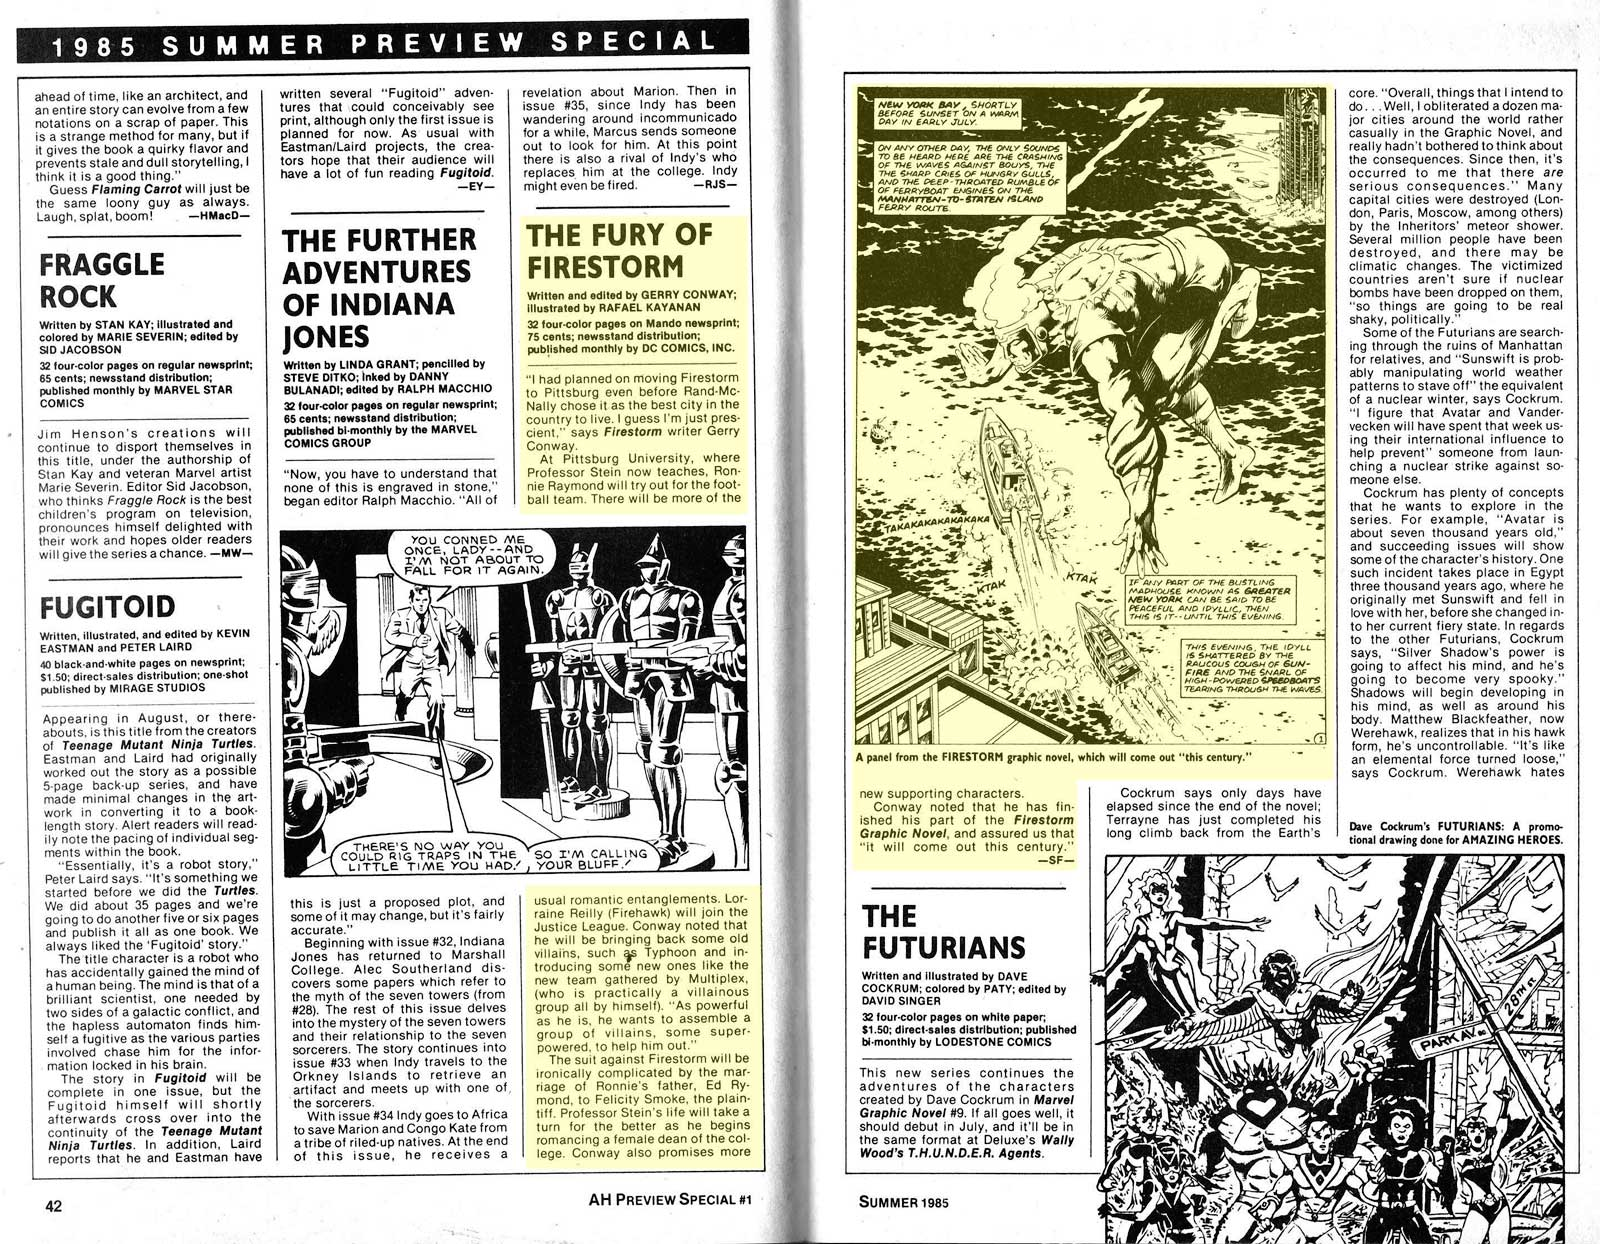 Amazing Heroes Preview Special #1 - Summer 1985 - Firestorm